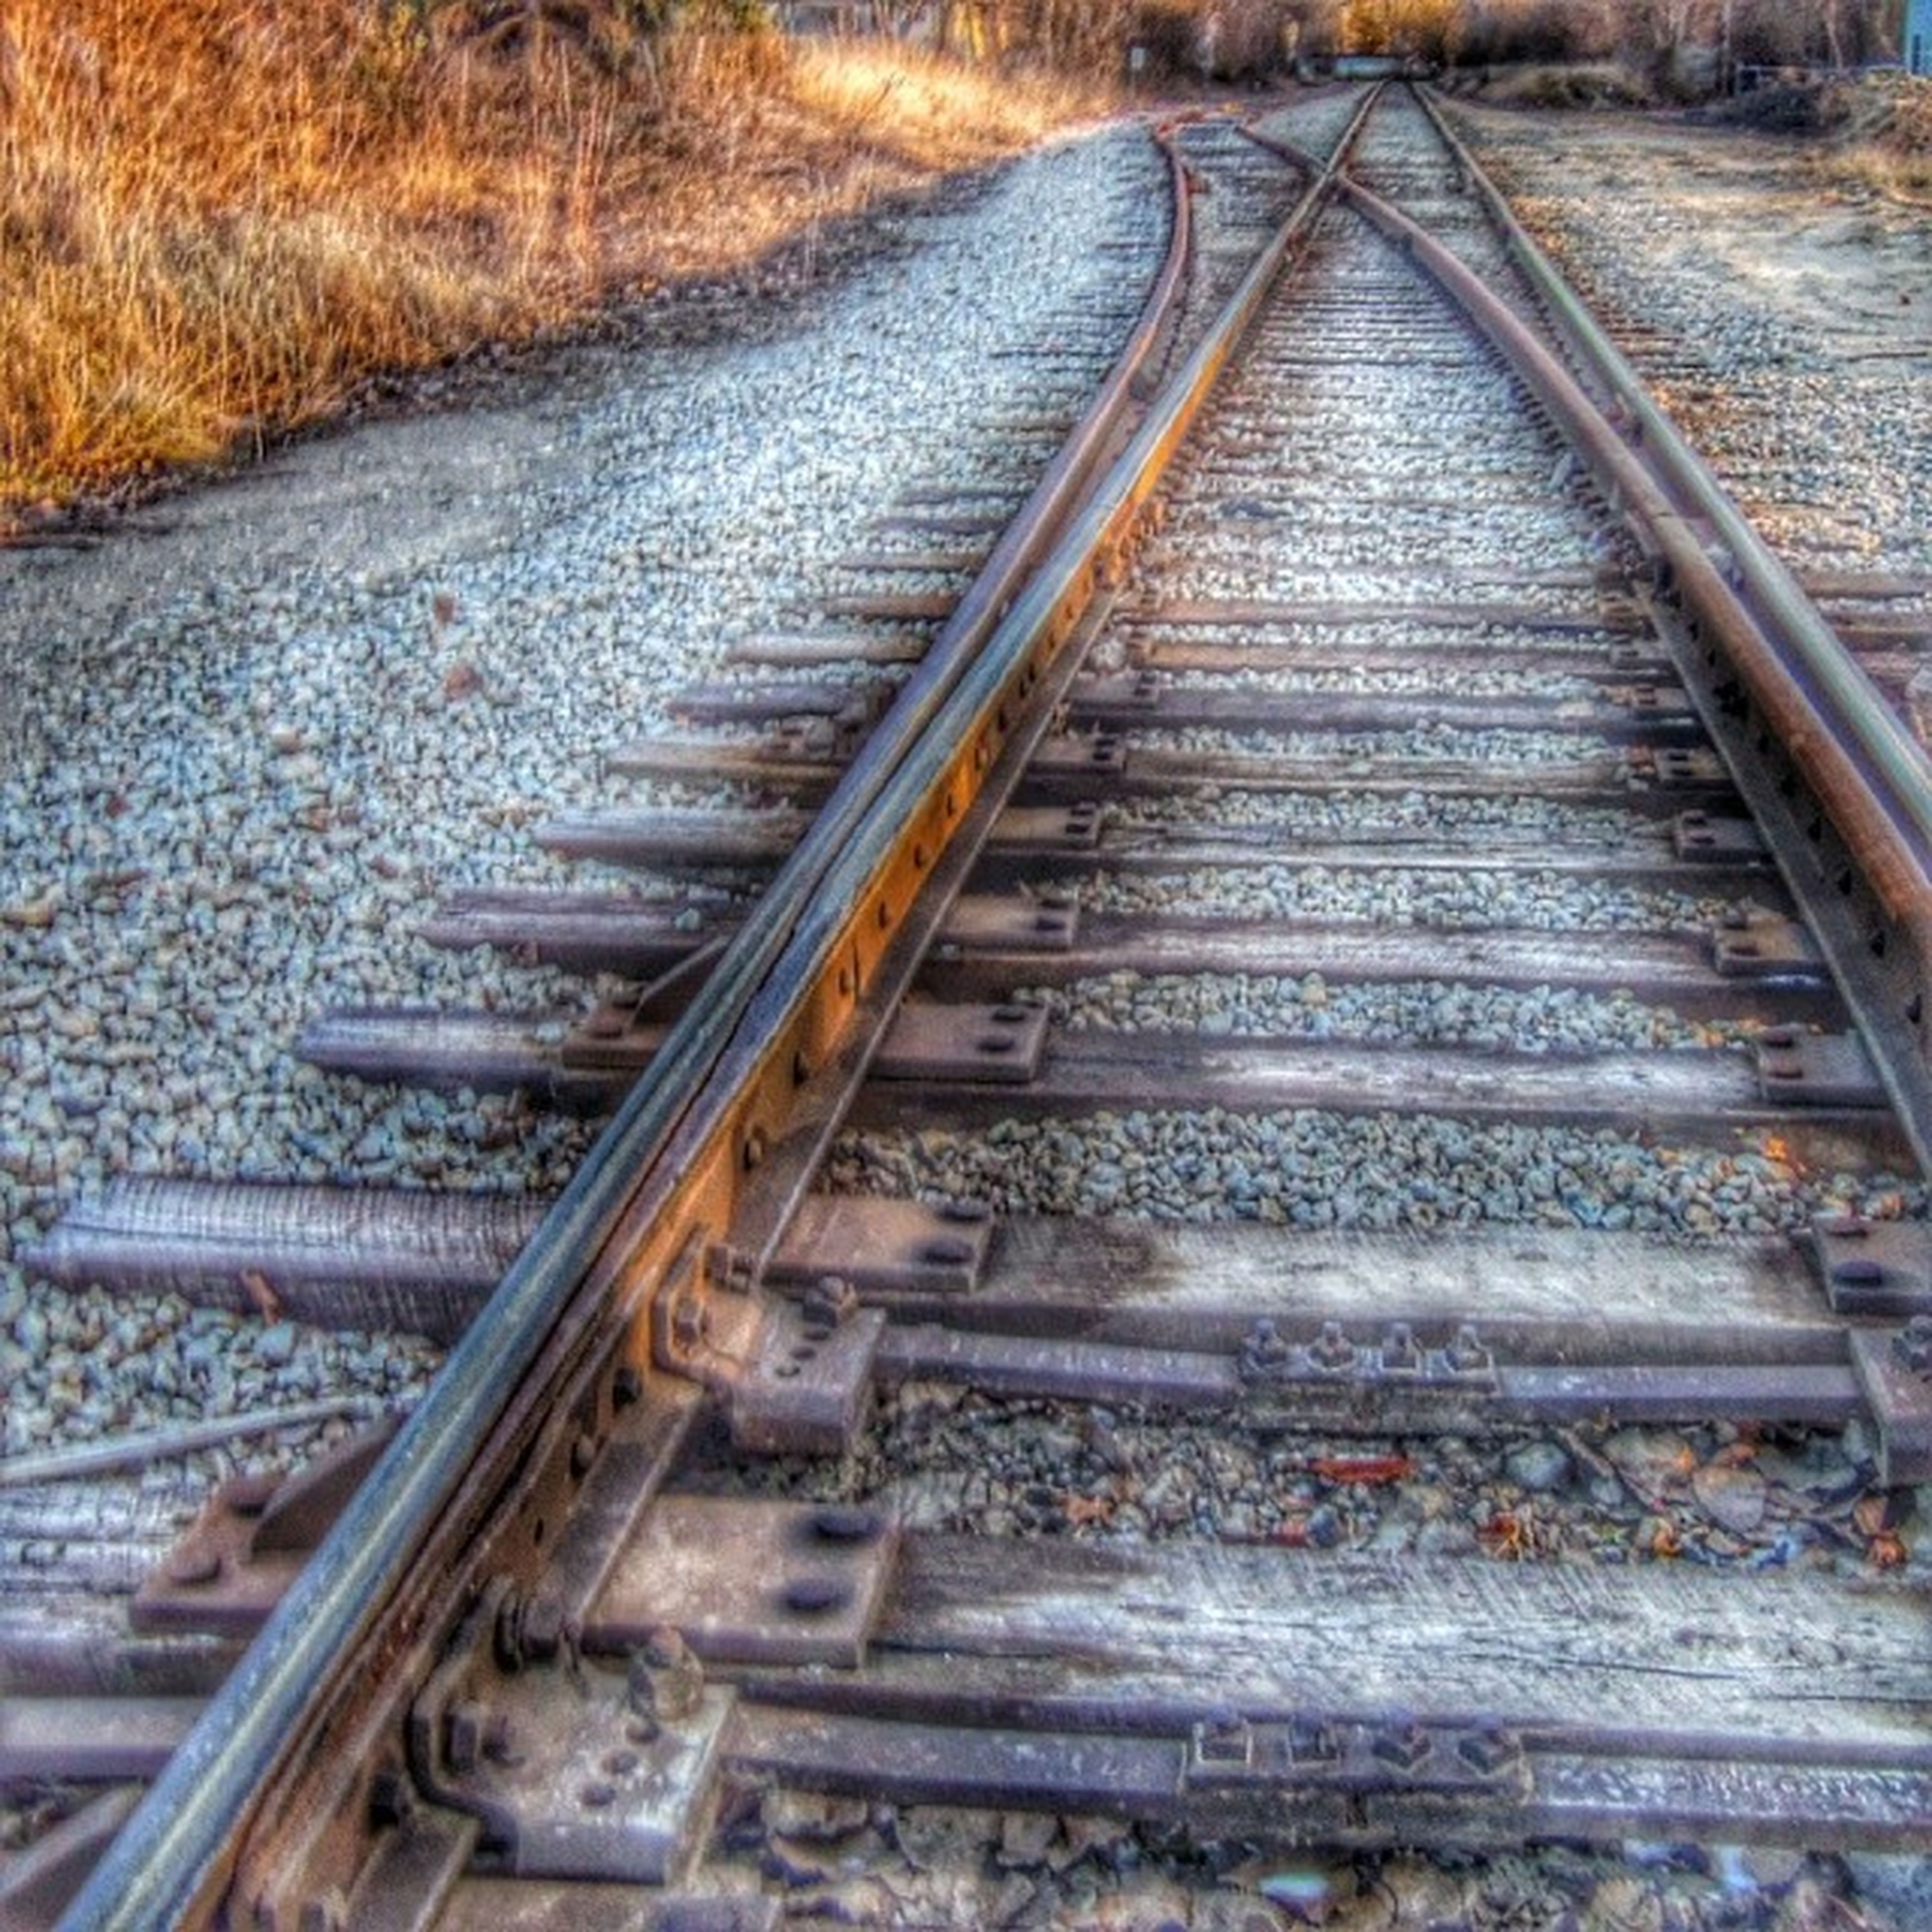 railroad track, transportation, the way forward, diminishing perspective, rail transportation, vanishing point, railway track, straight, metal, day, high angle view, long, no people, connection, outdoors, public transportation, surface level, gravel, rusty, metallic